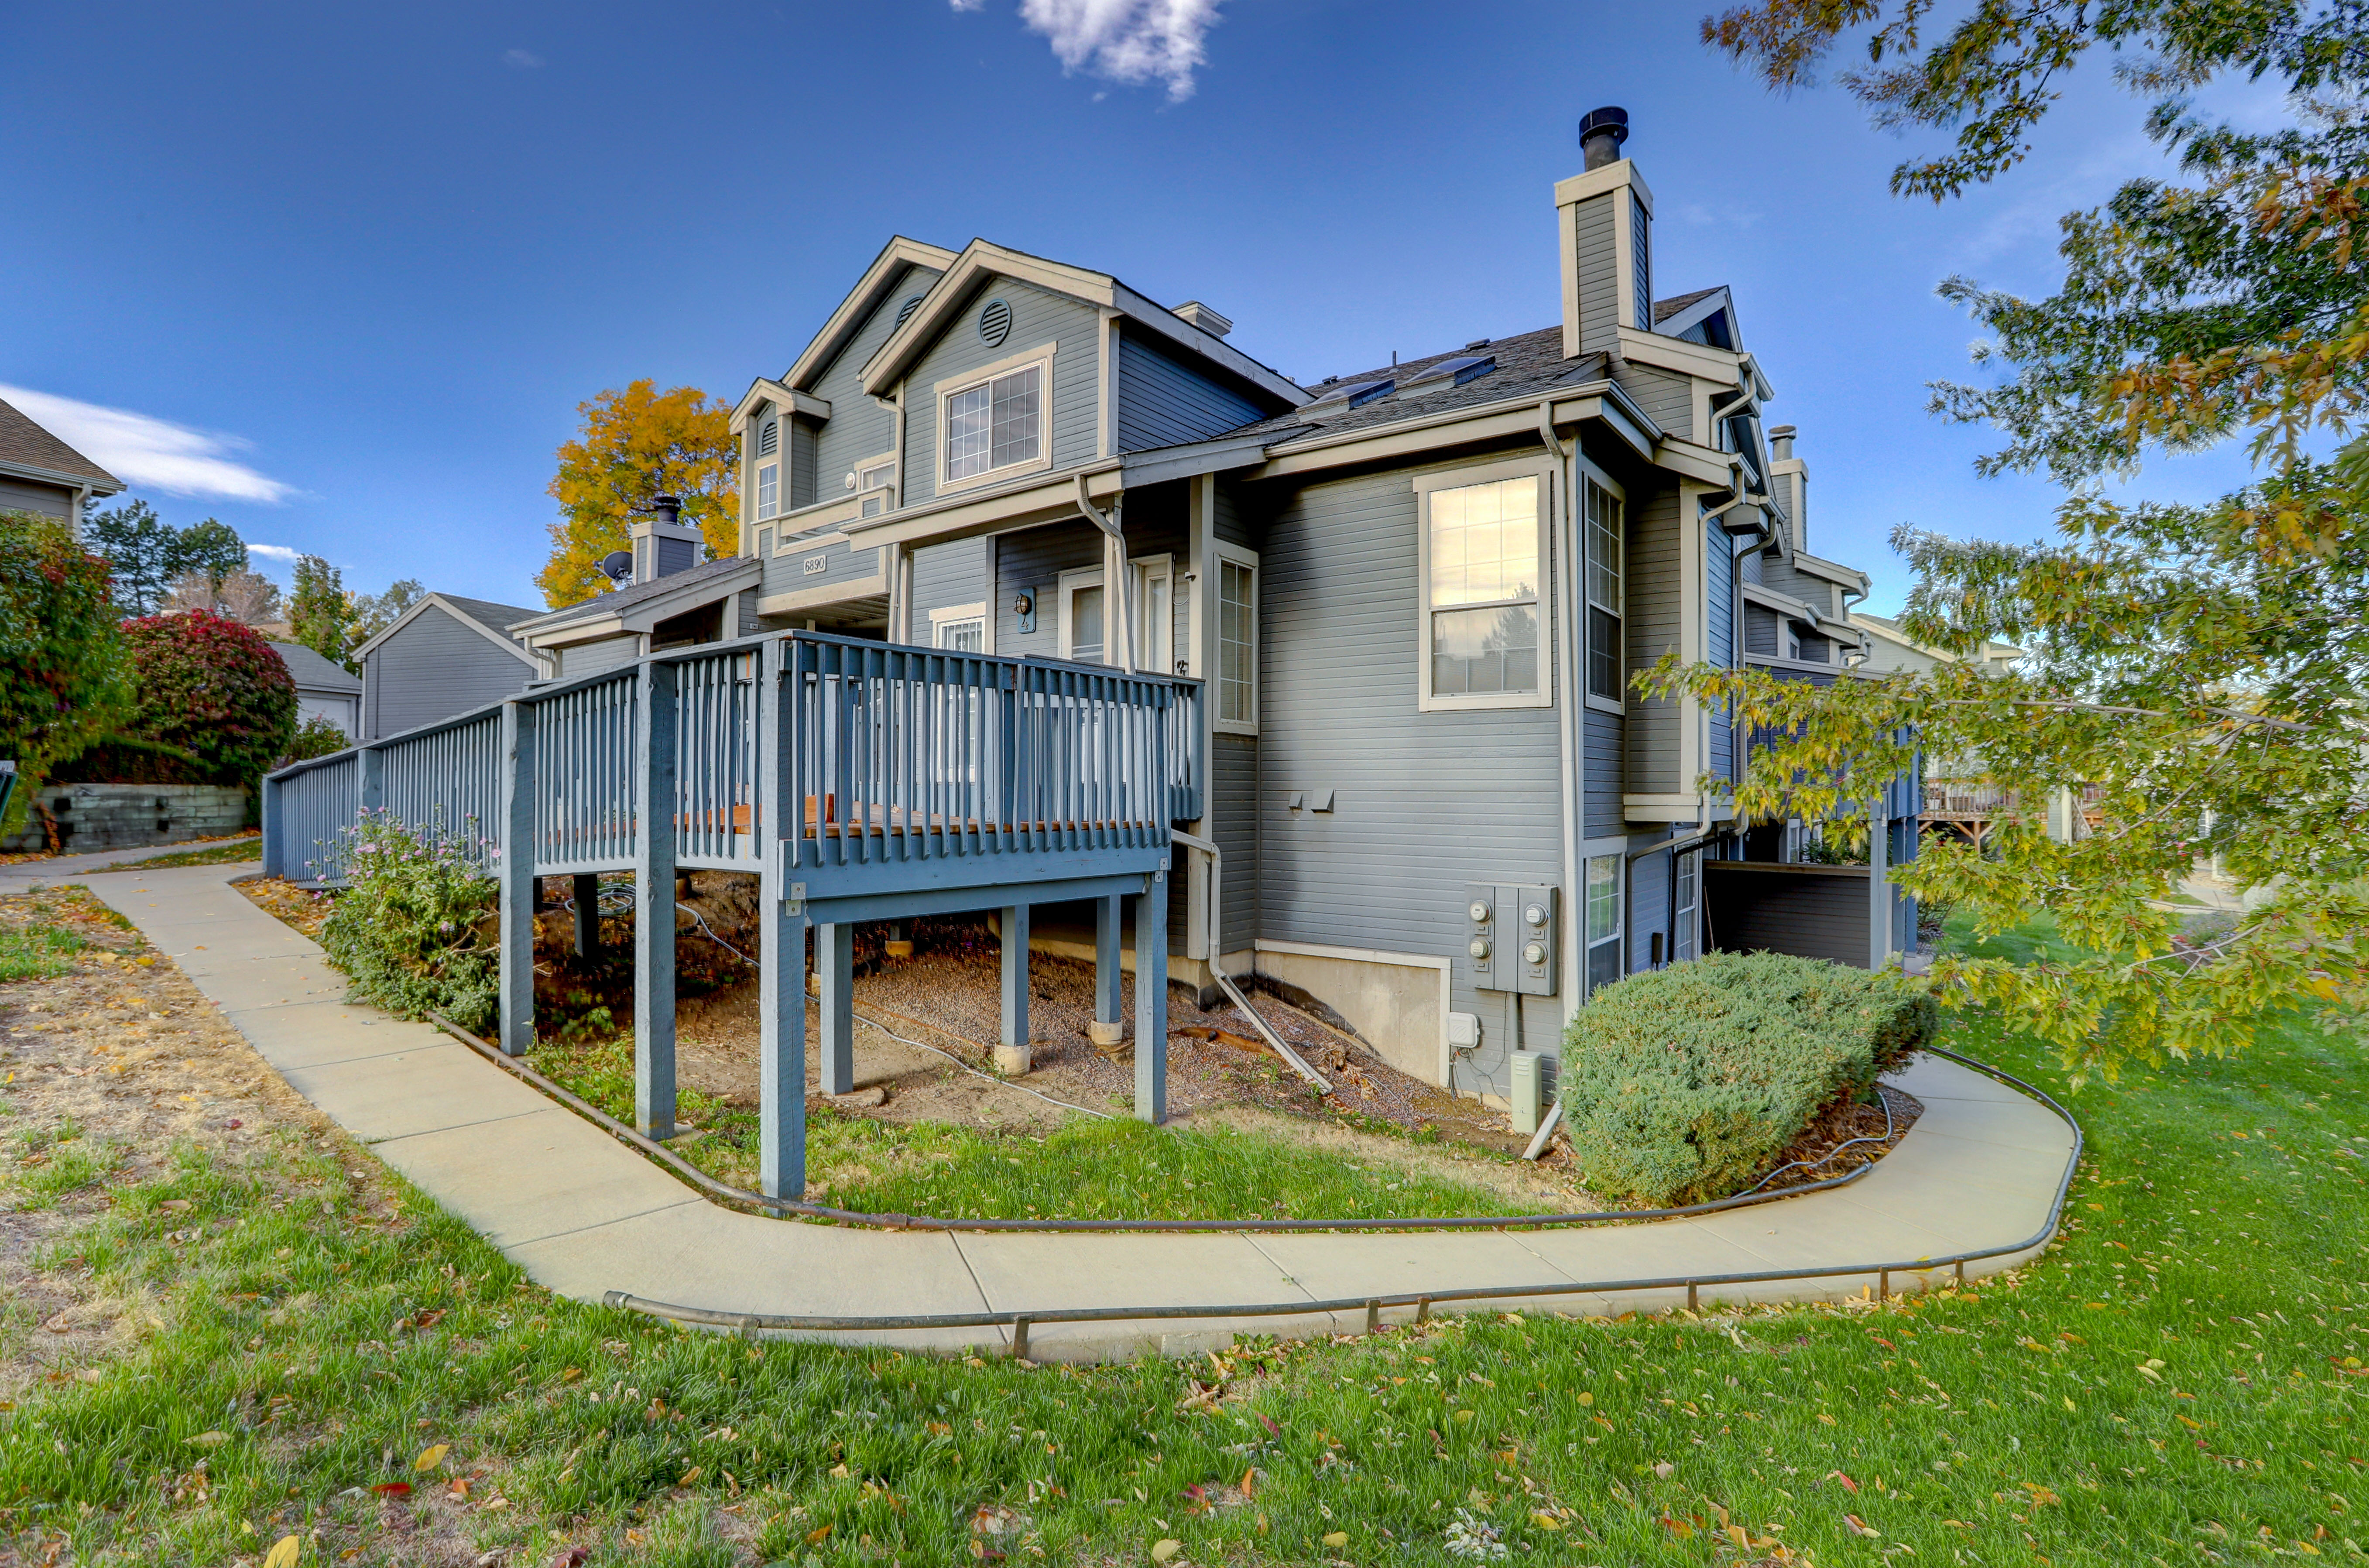 """Condo in highly desireable """"The Yacht Club"""" community in Westminster, CO."""